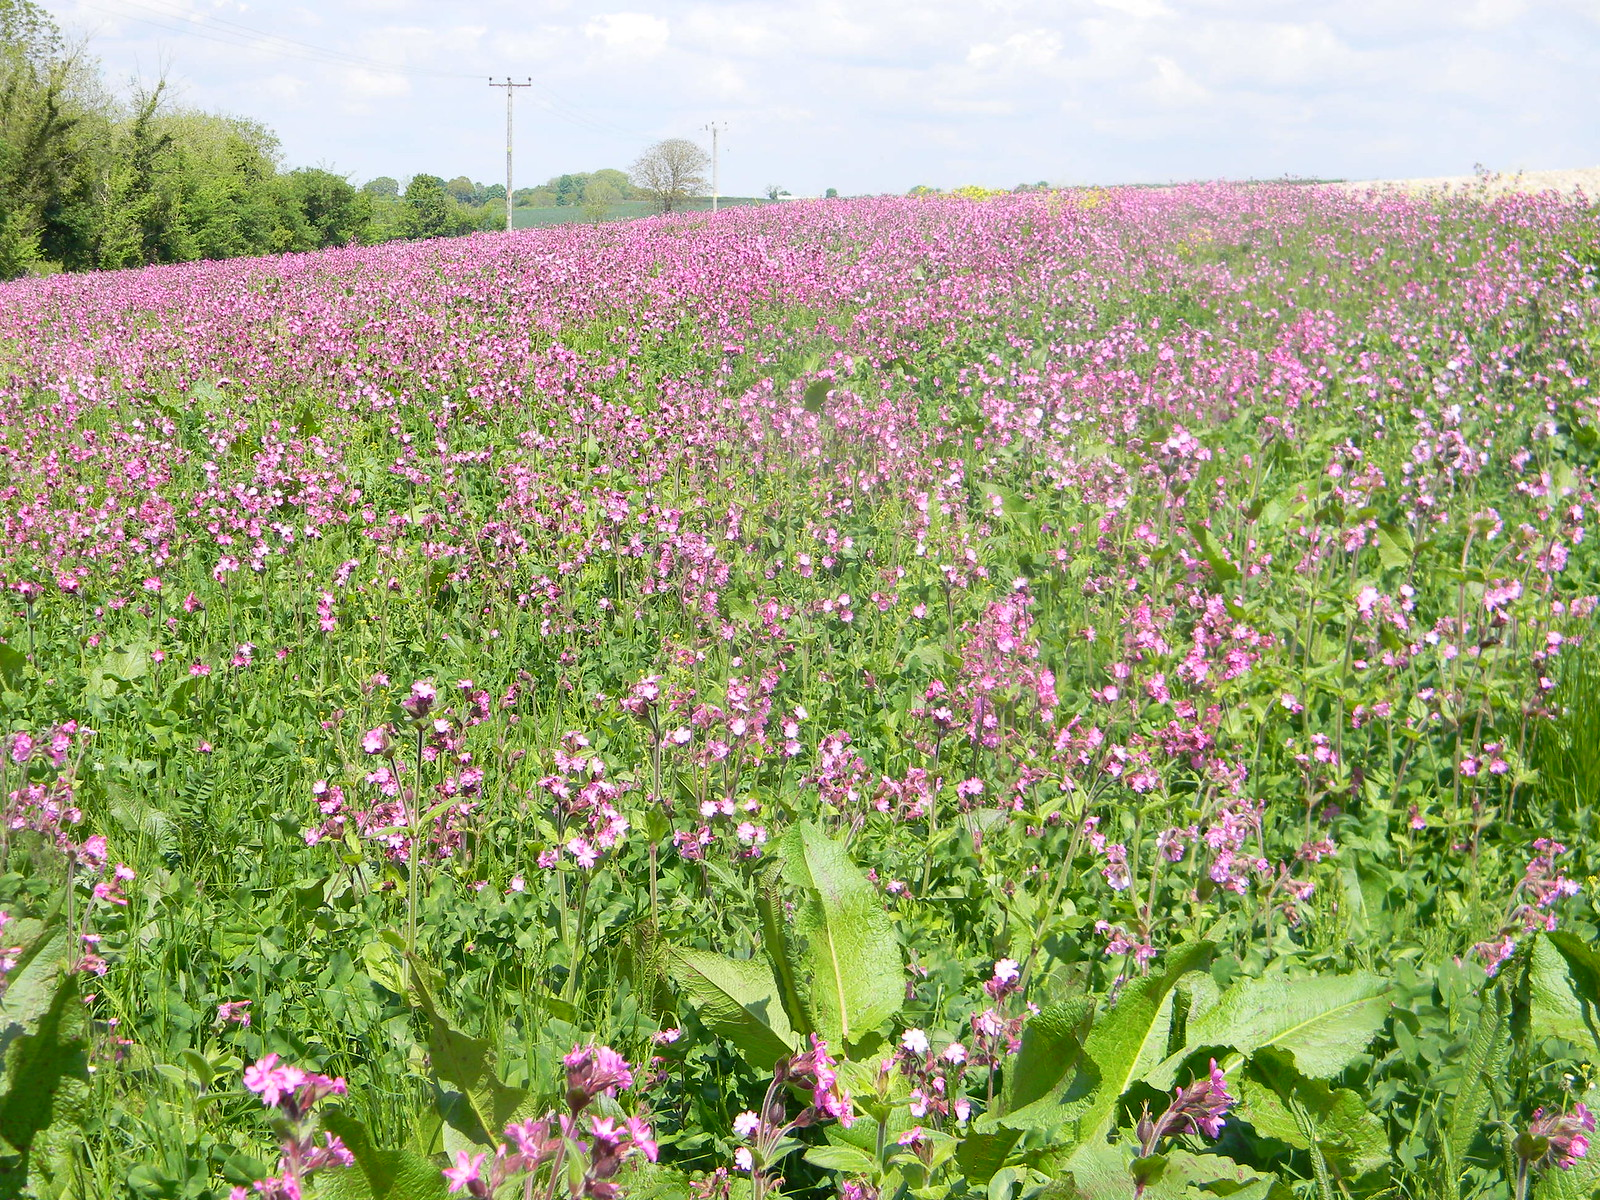 Field of red A vast expanse of red campion. Salisbury to Amesbury via Stonehenge